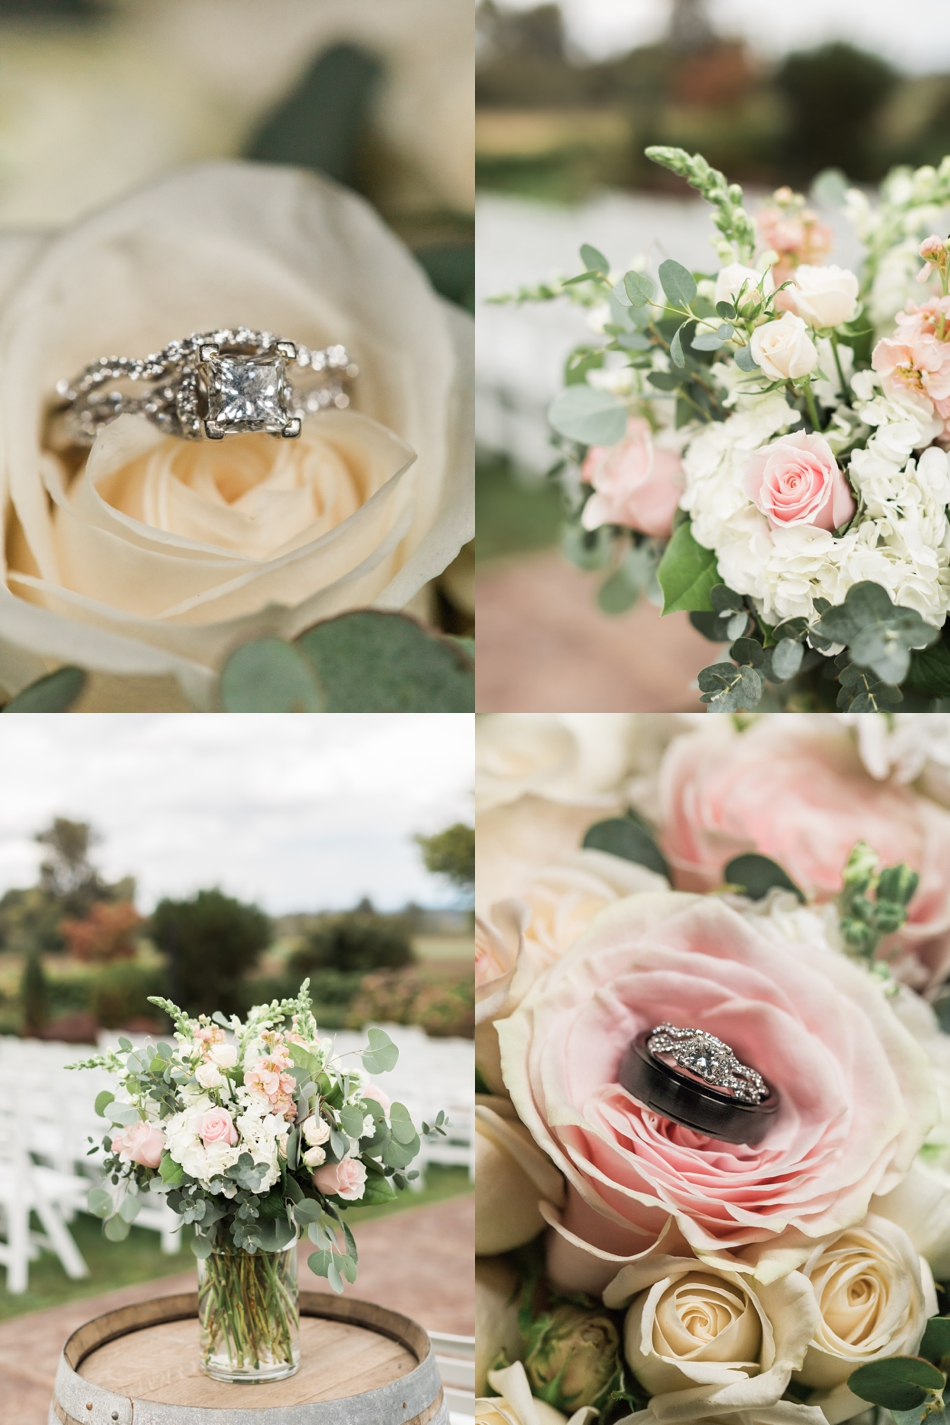 Photo of wedding rings and bridal bouquet at a Hidden Meadows Farms wedding in Snohomish, a rustic yet elegant wedding venue near Seattle. | Joanna Monger Photography